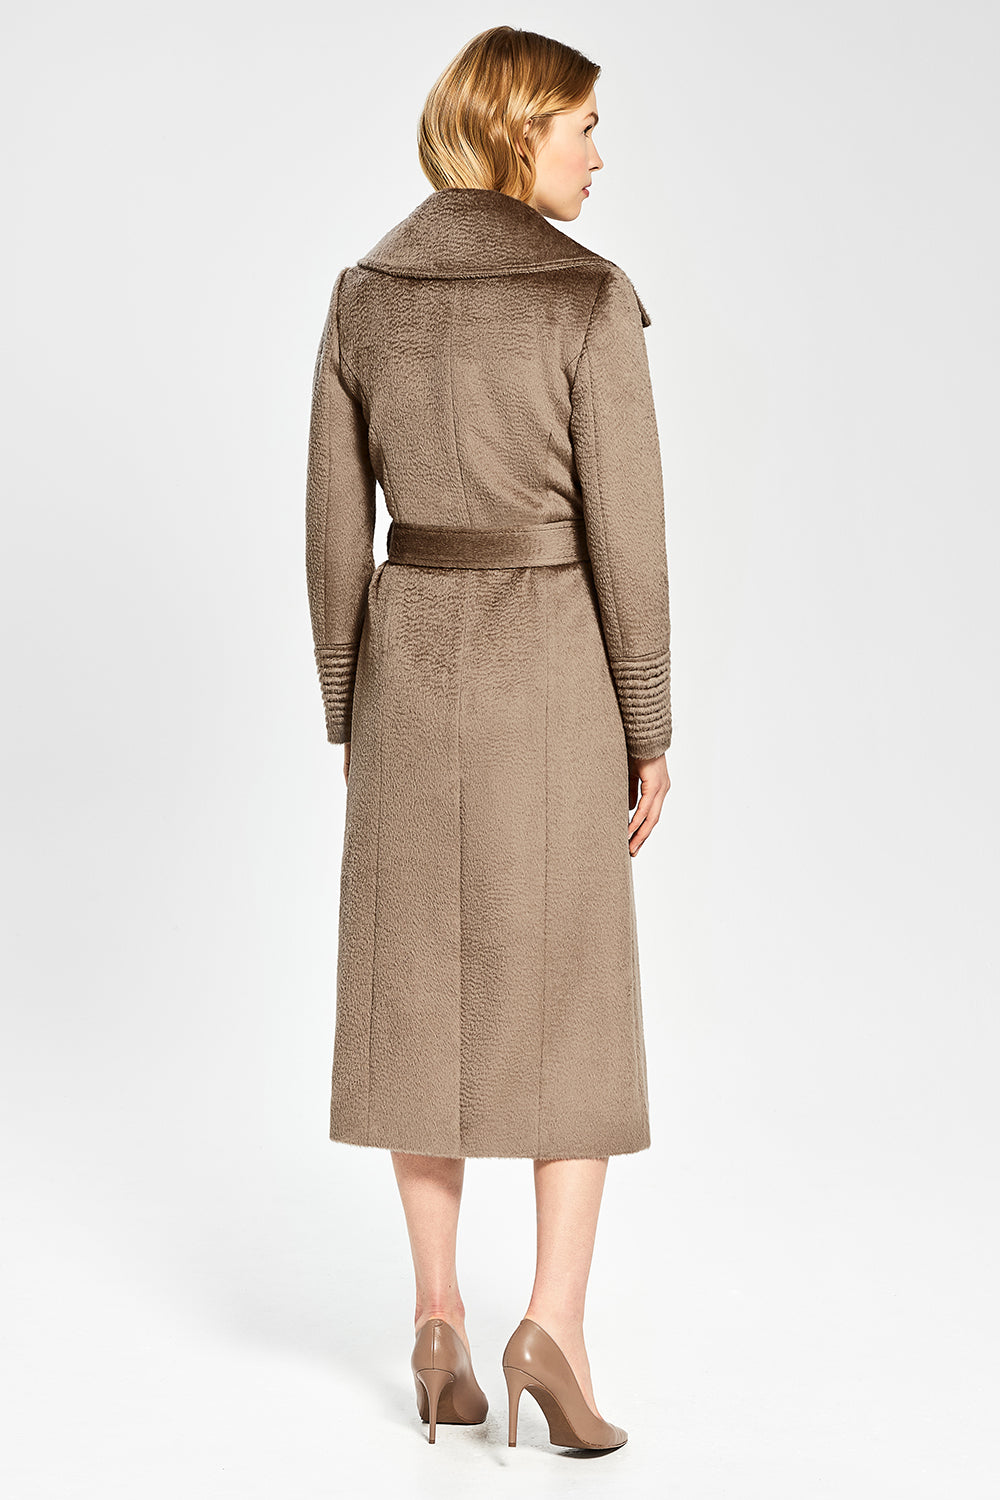 Sentaler Suri Alpaca Long Notched Collar Wrap Coat featured in Suri Alpaca and available in Hazelnut. Seen from back.